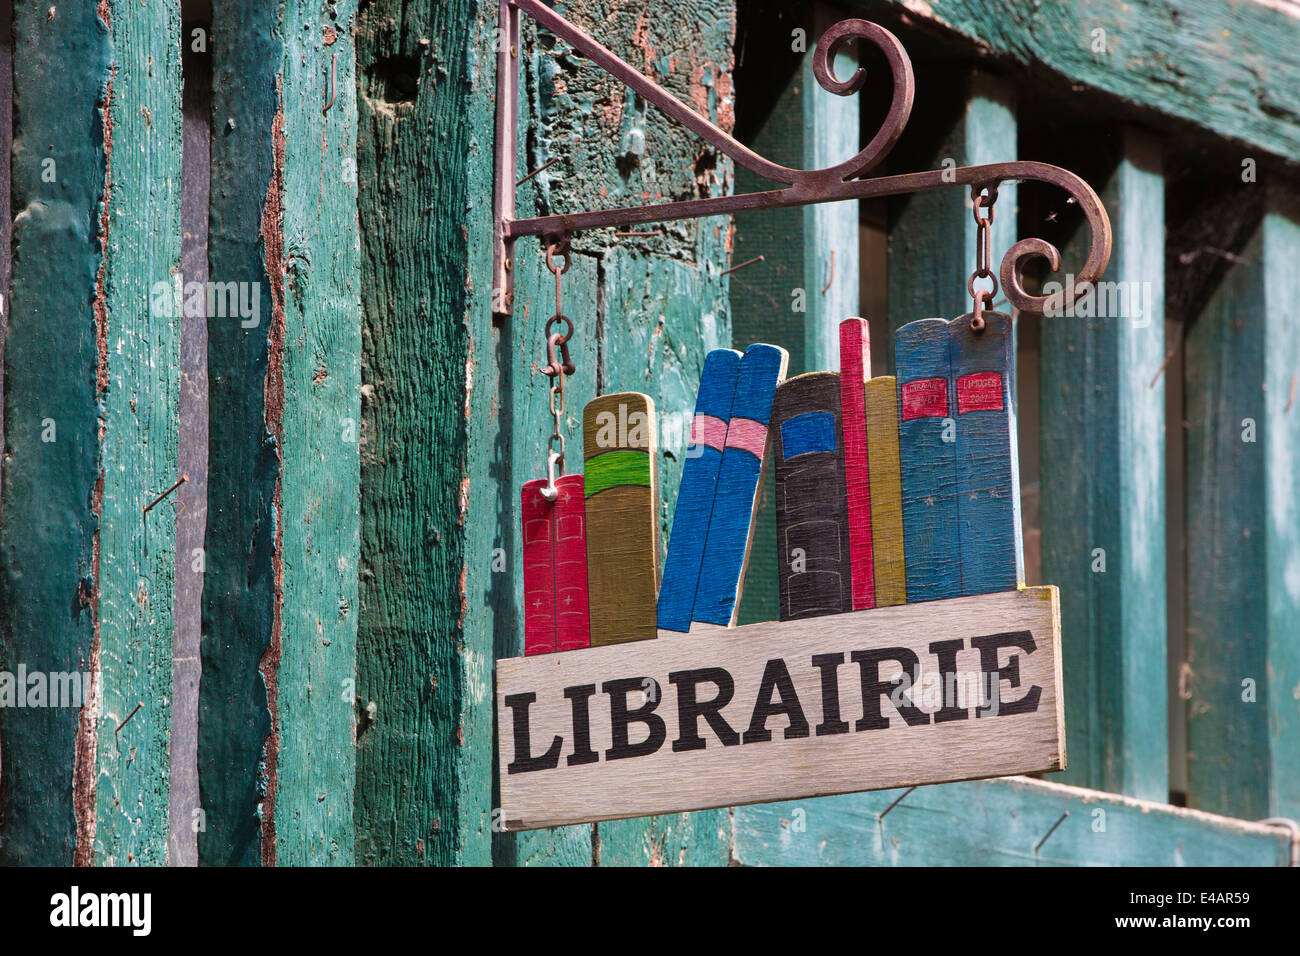 Librairie in the Village de la Boucherie, Limoges, Haute-Vienne, Limousin region, West-Central France, Europe - Stock Image